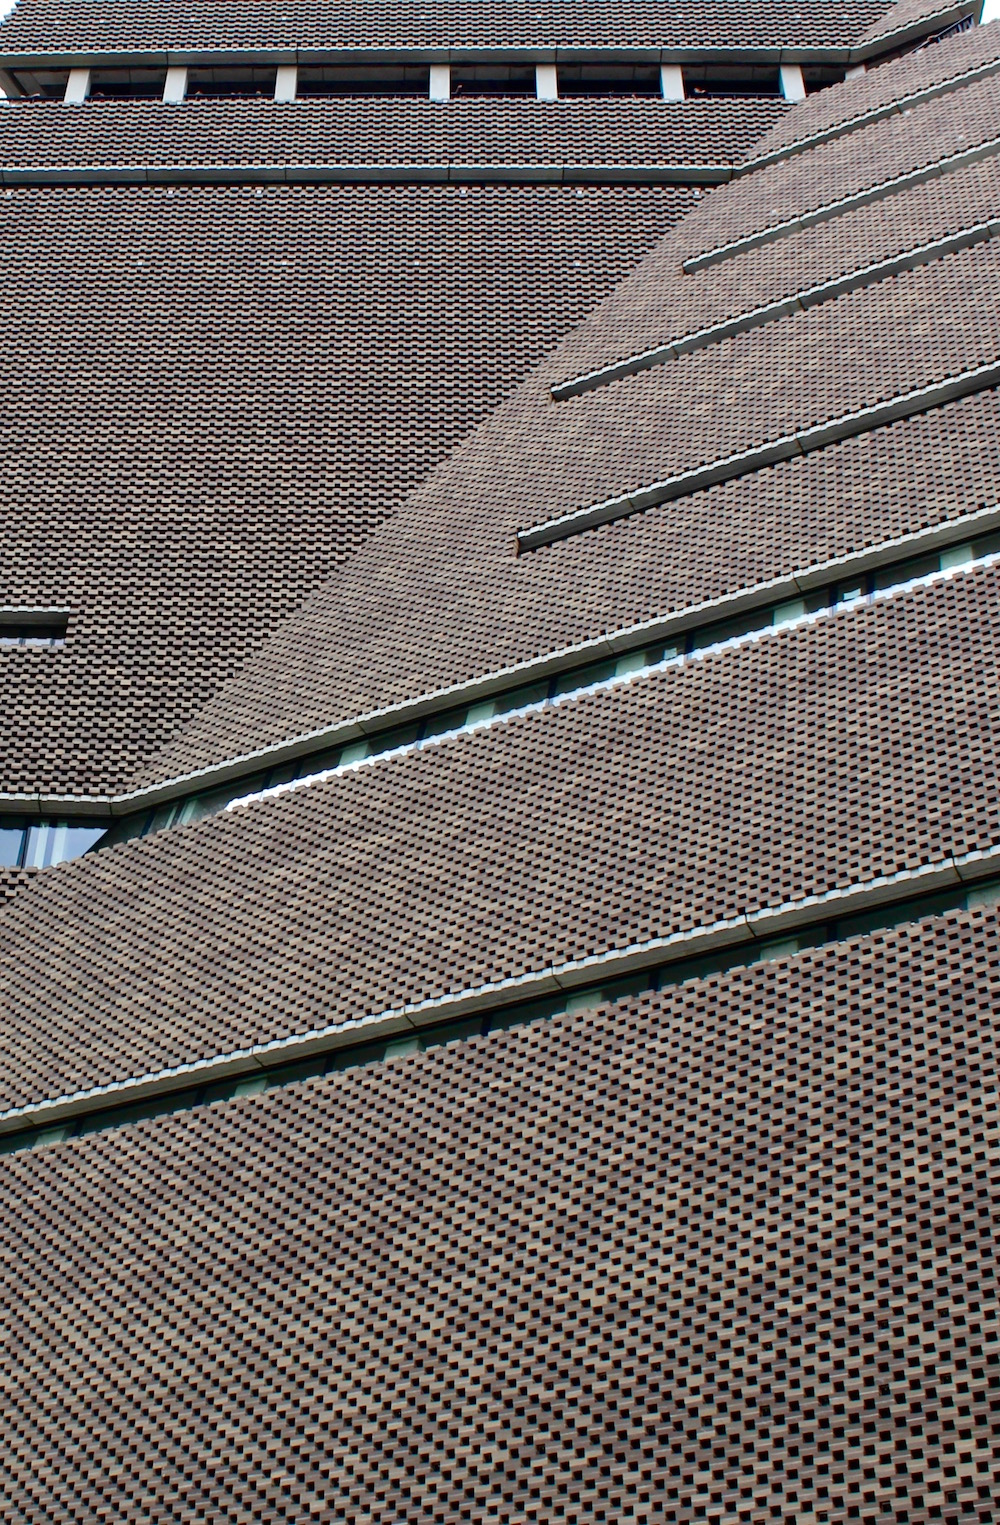 Switch house tate Modern